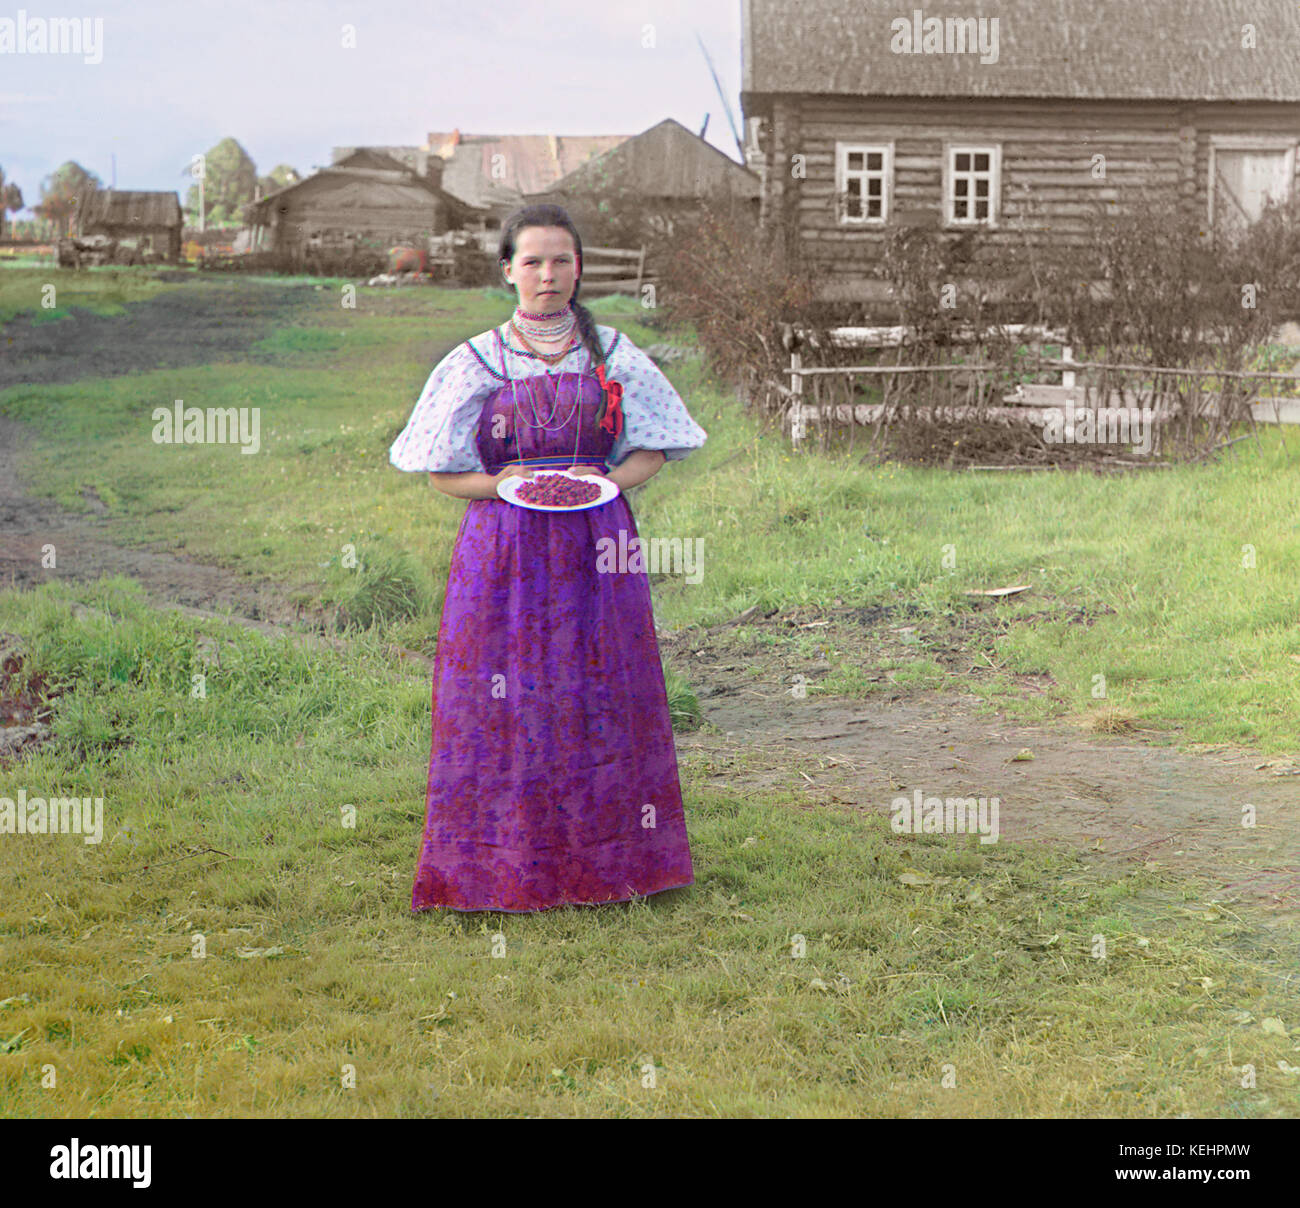 Peasant Girl with Berries,near Kirillov,Russia,Prokudin-Gorskii Collection,1909 - Stock Image